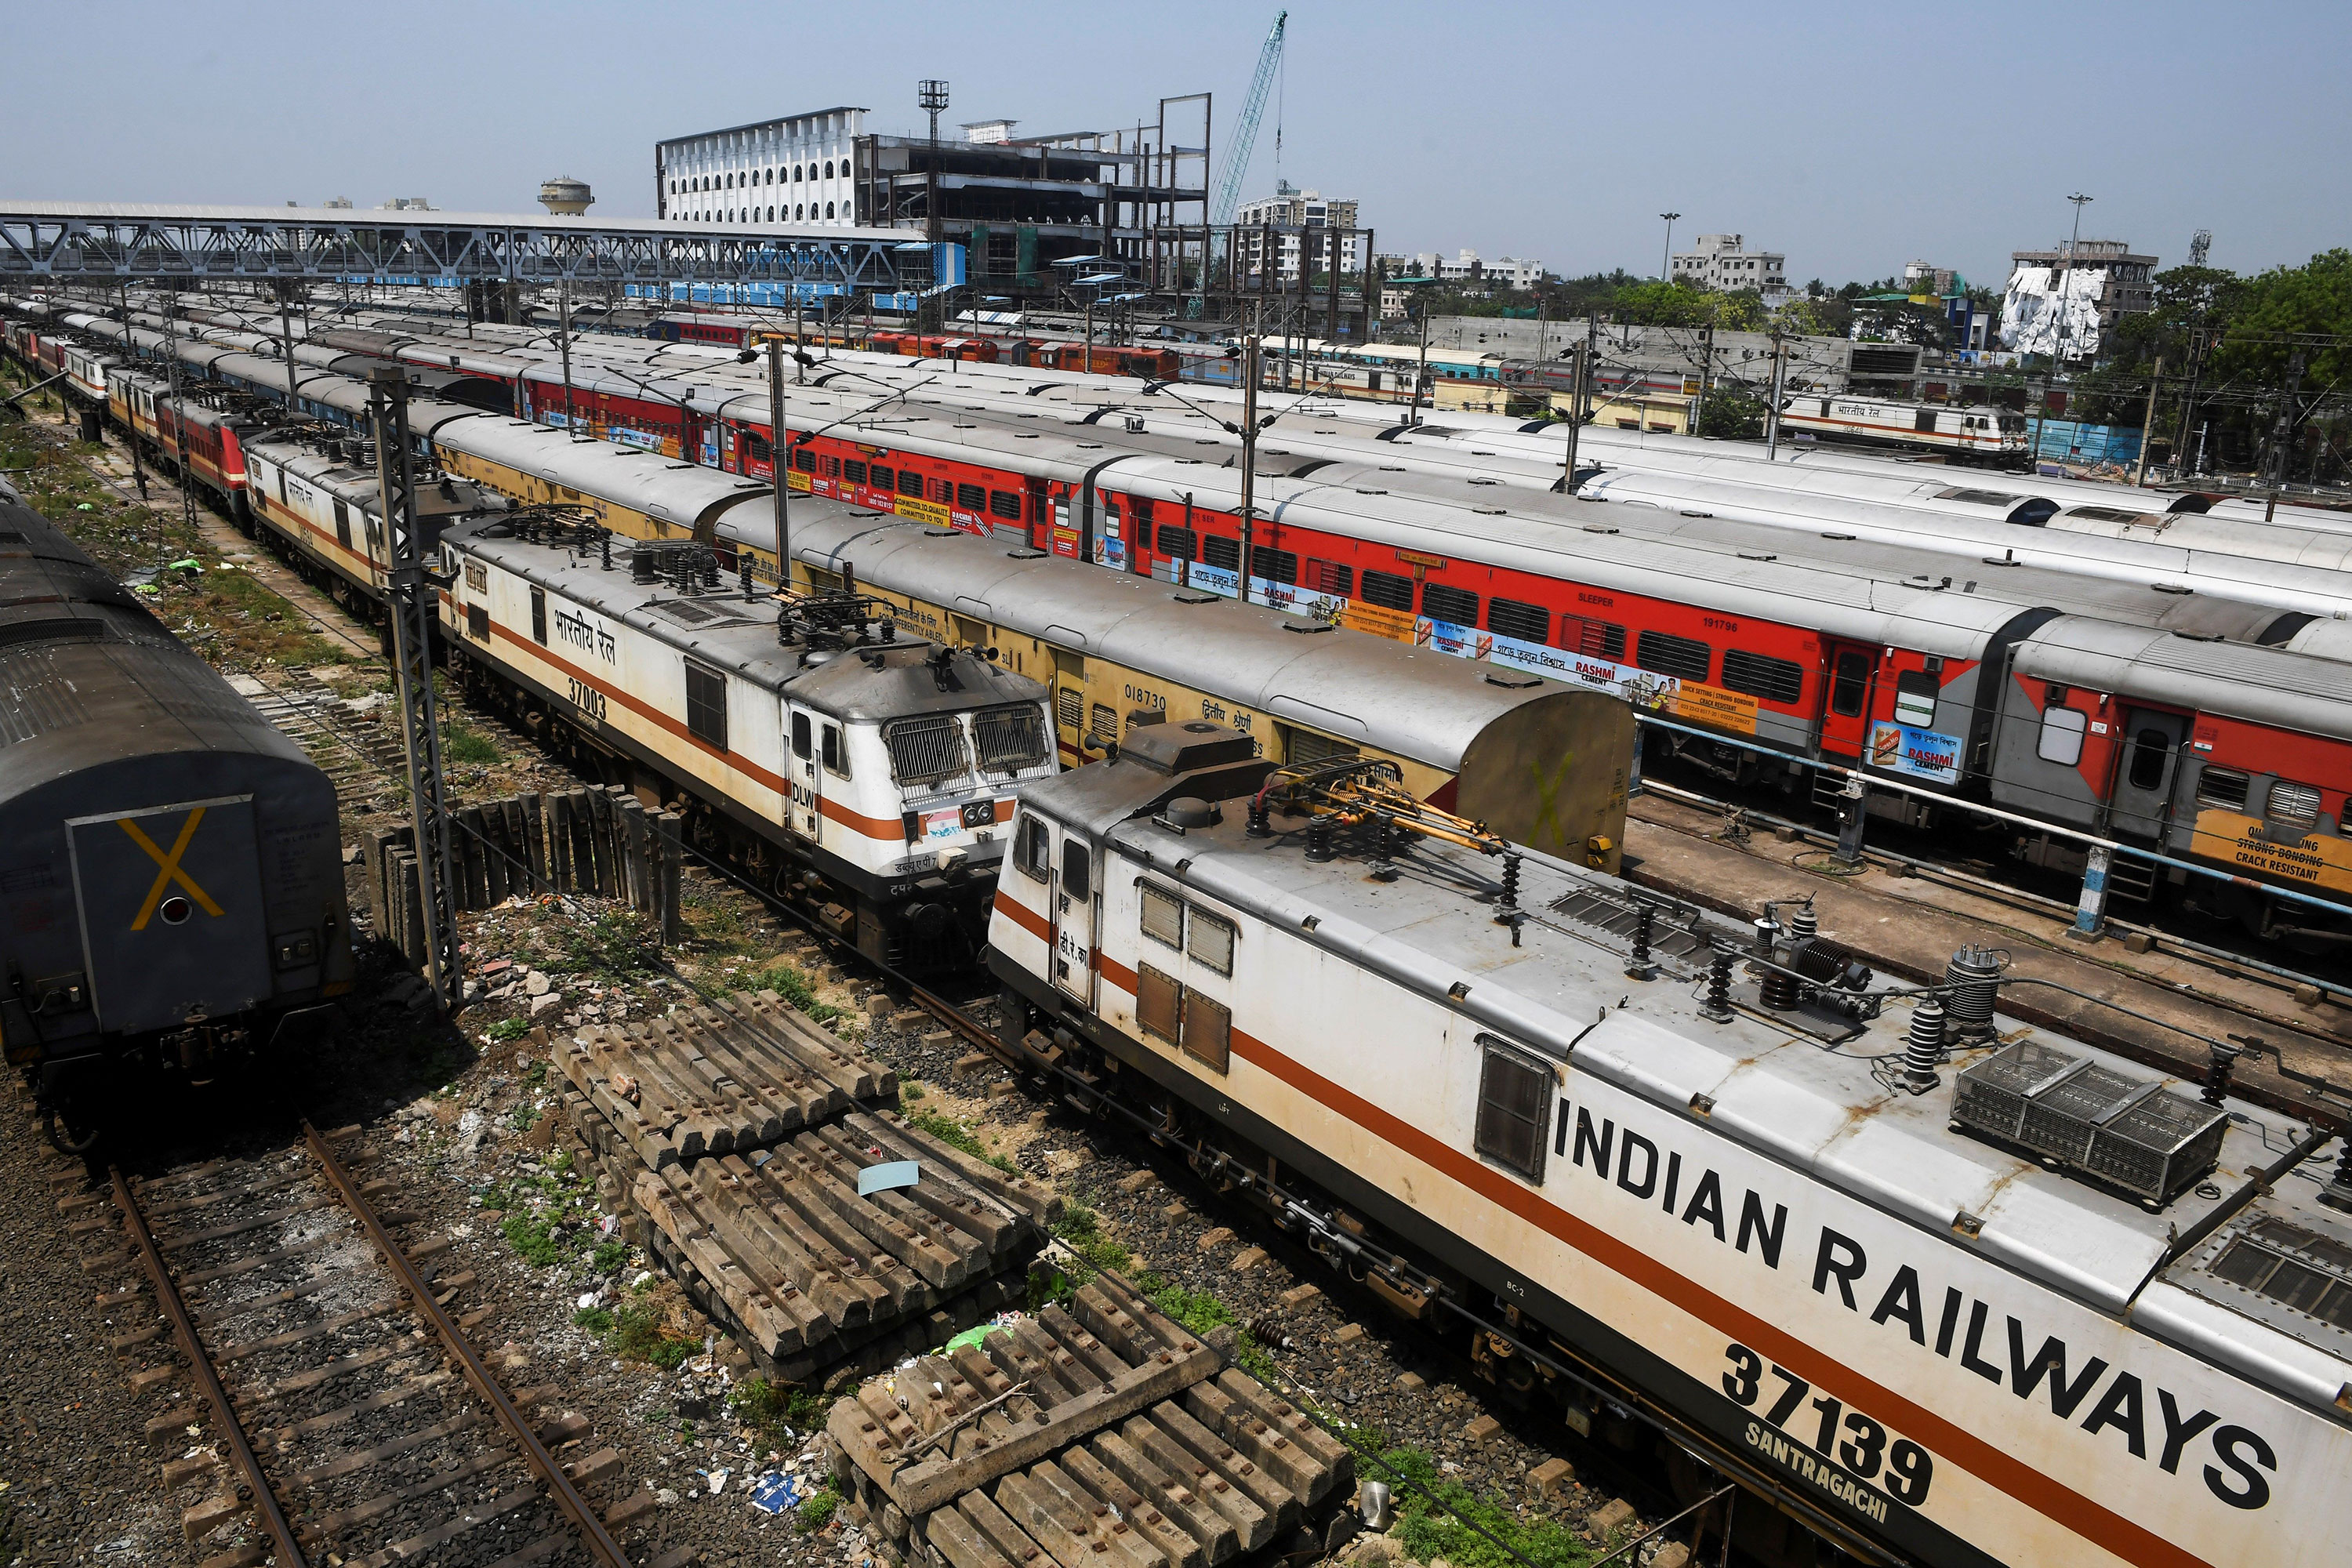 Empty trains sit parked at a station in Kolkata, India, on March 28 during the nationwide lockdown.